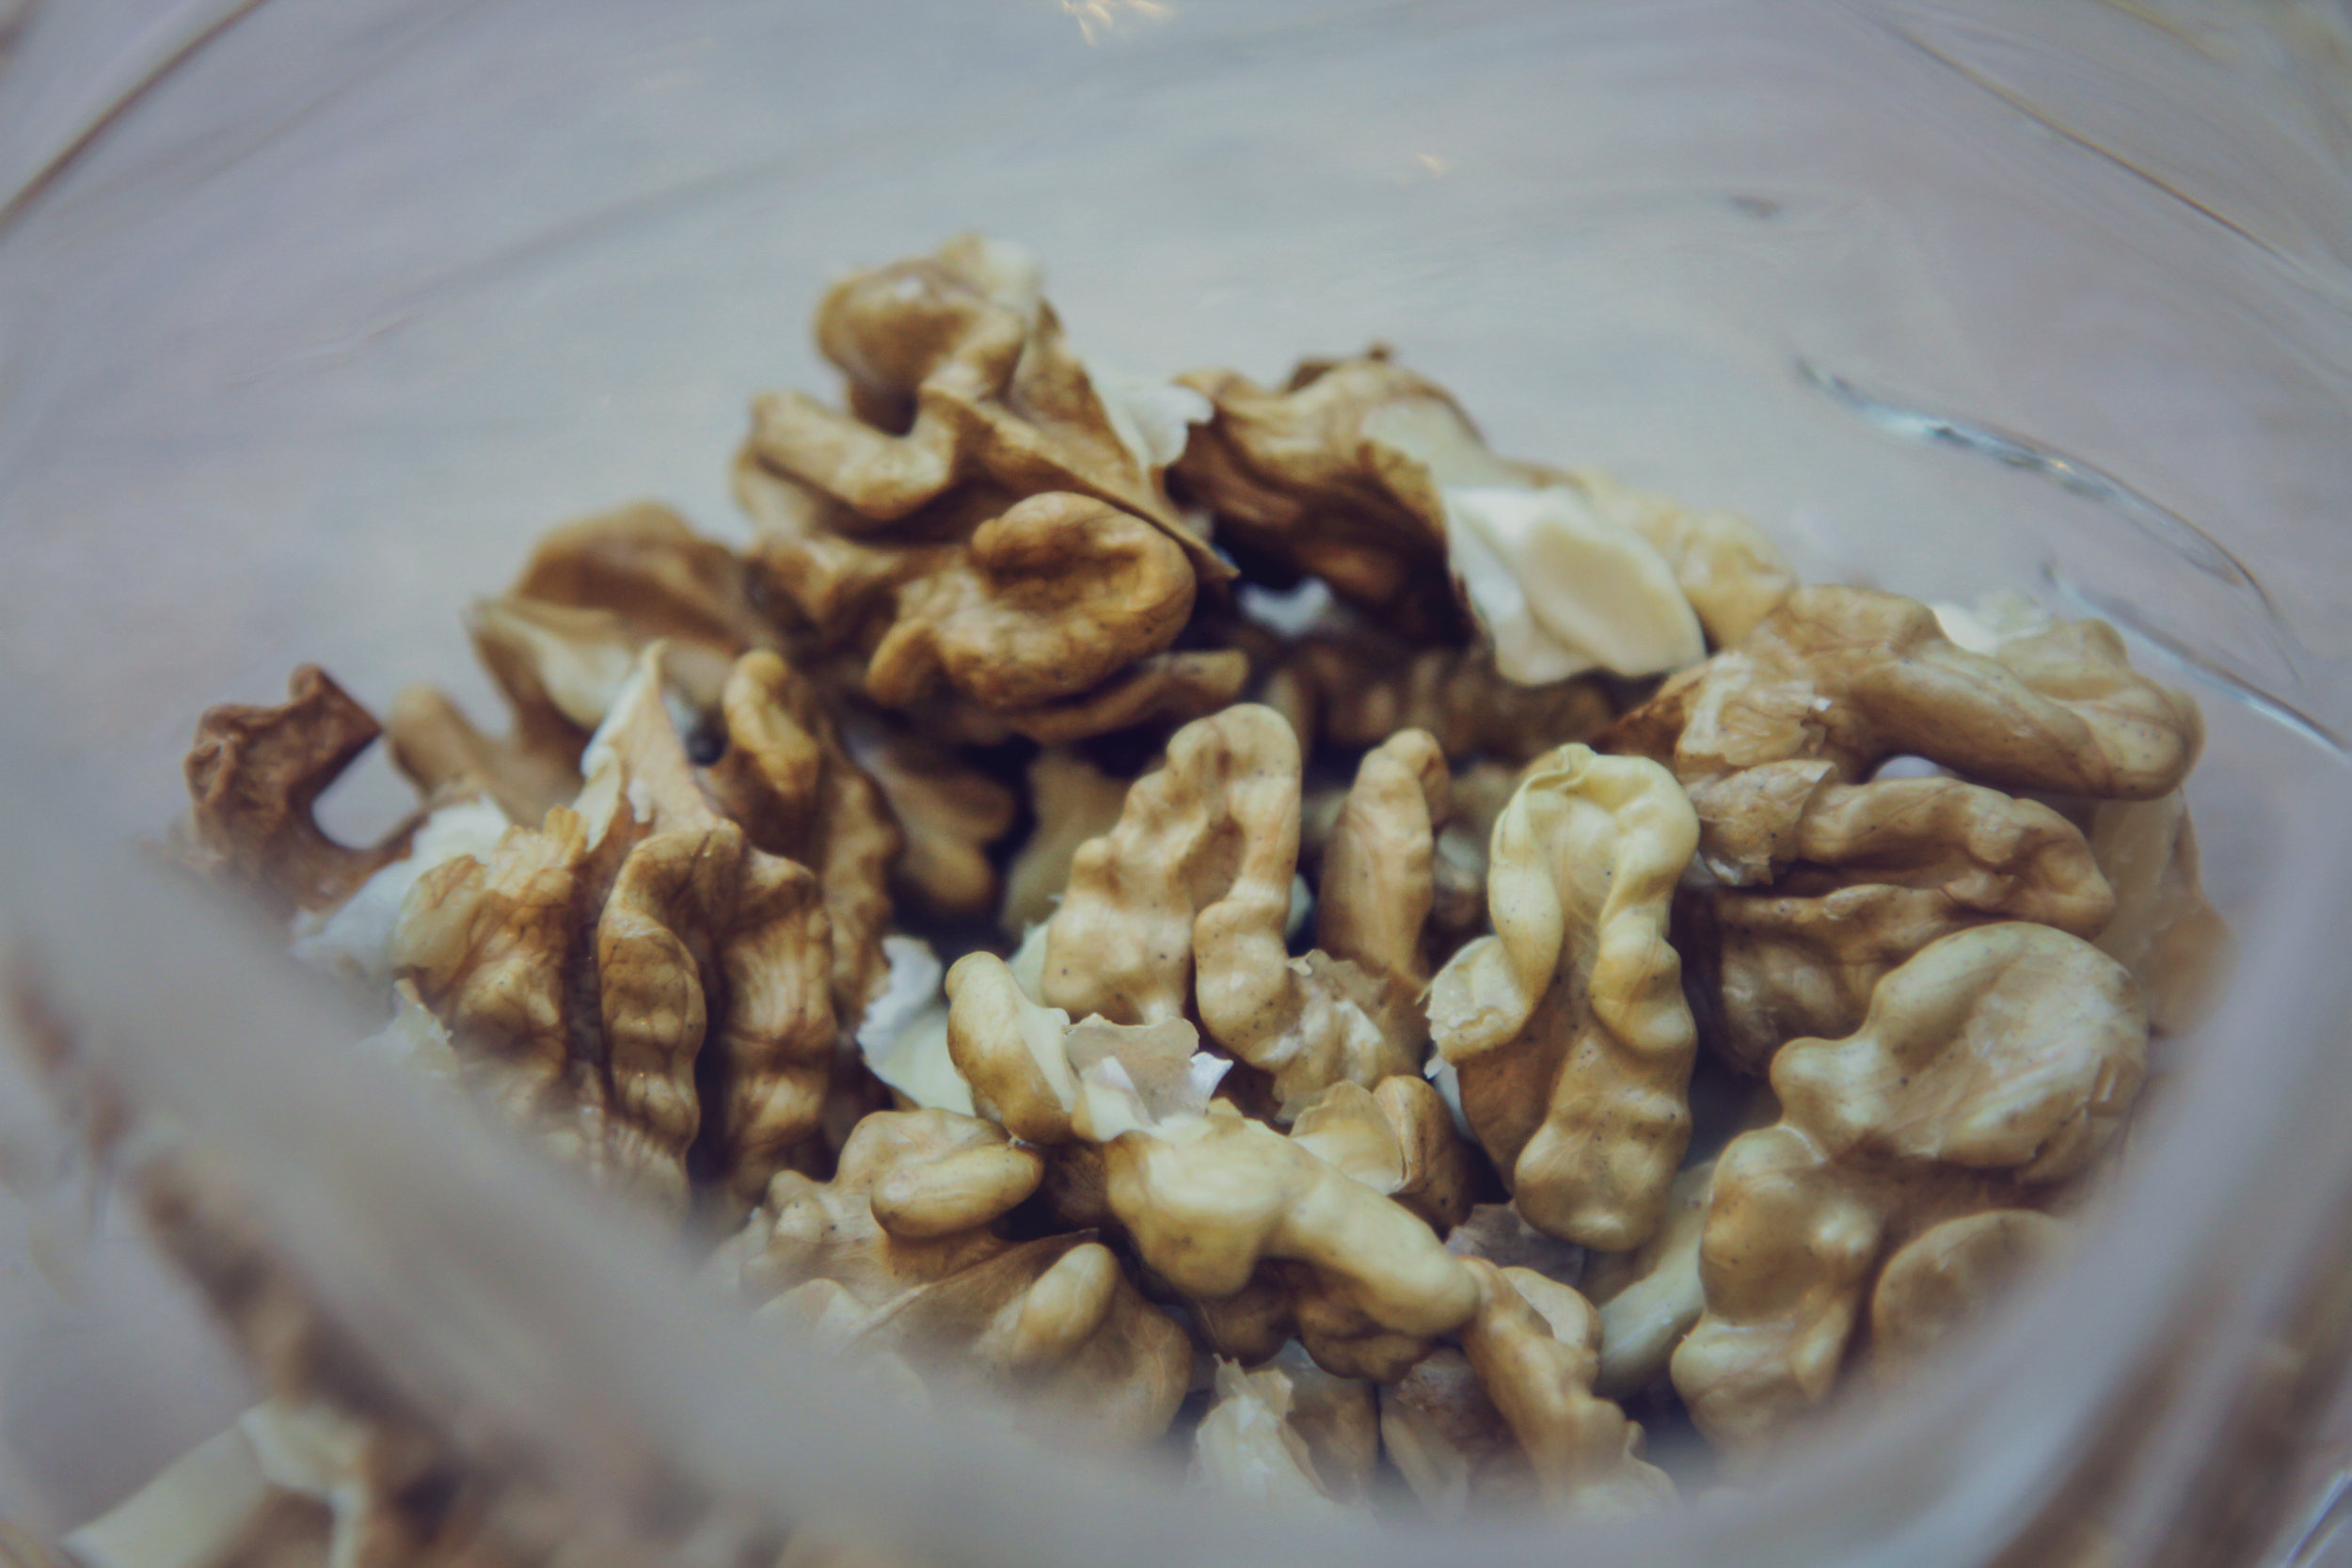 Did you know? Walnuts are the Only Nut With Omega-3 Fats -